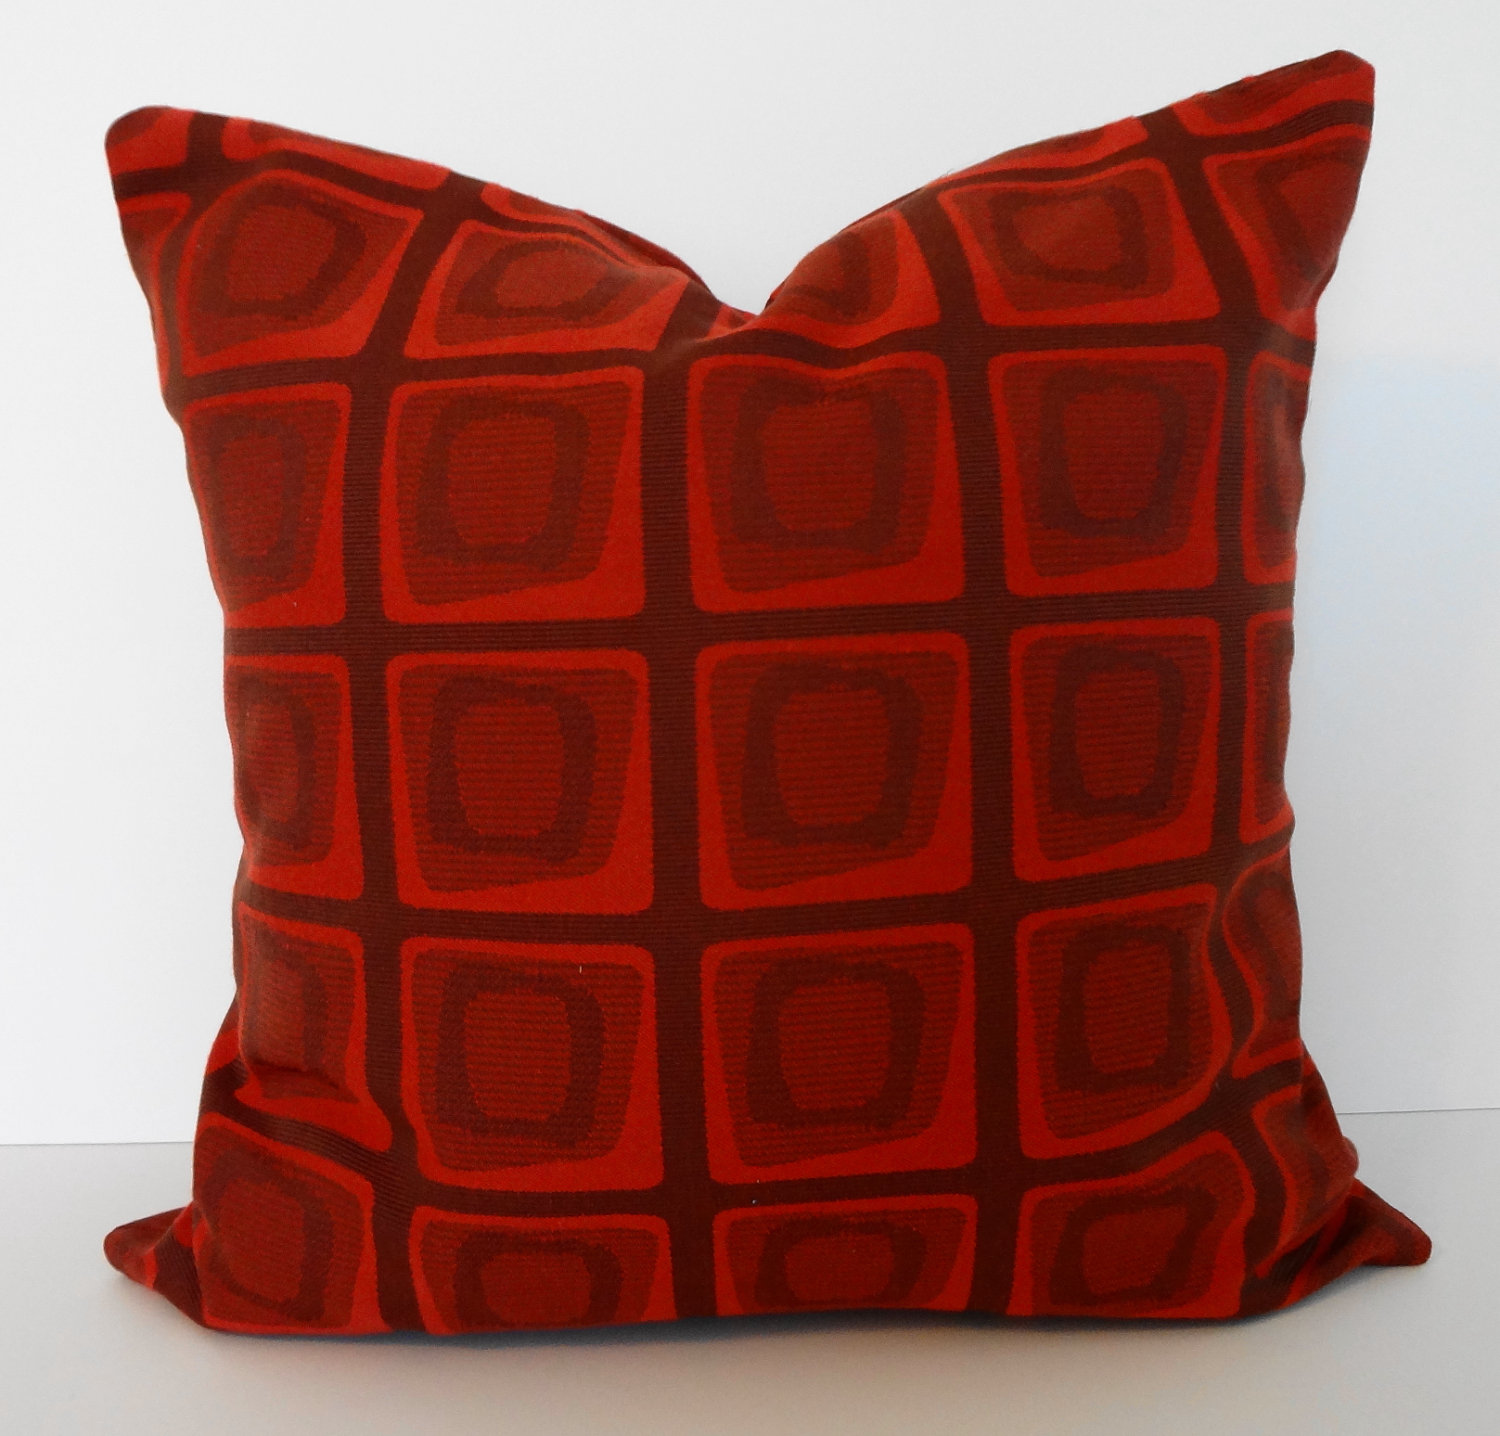 Image of: Creative Red Decorative Pillows